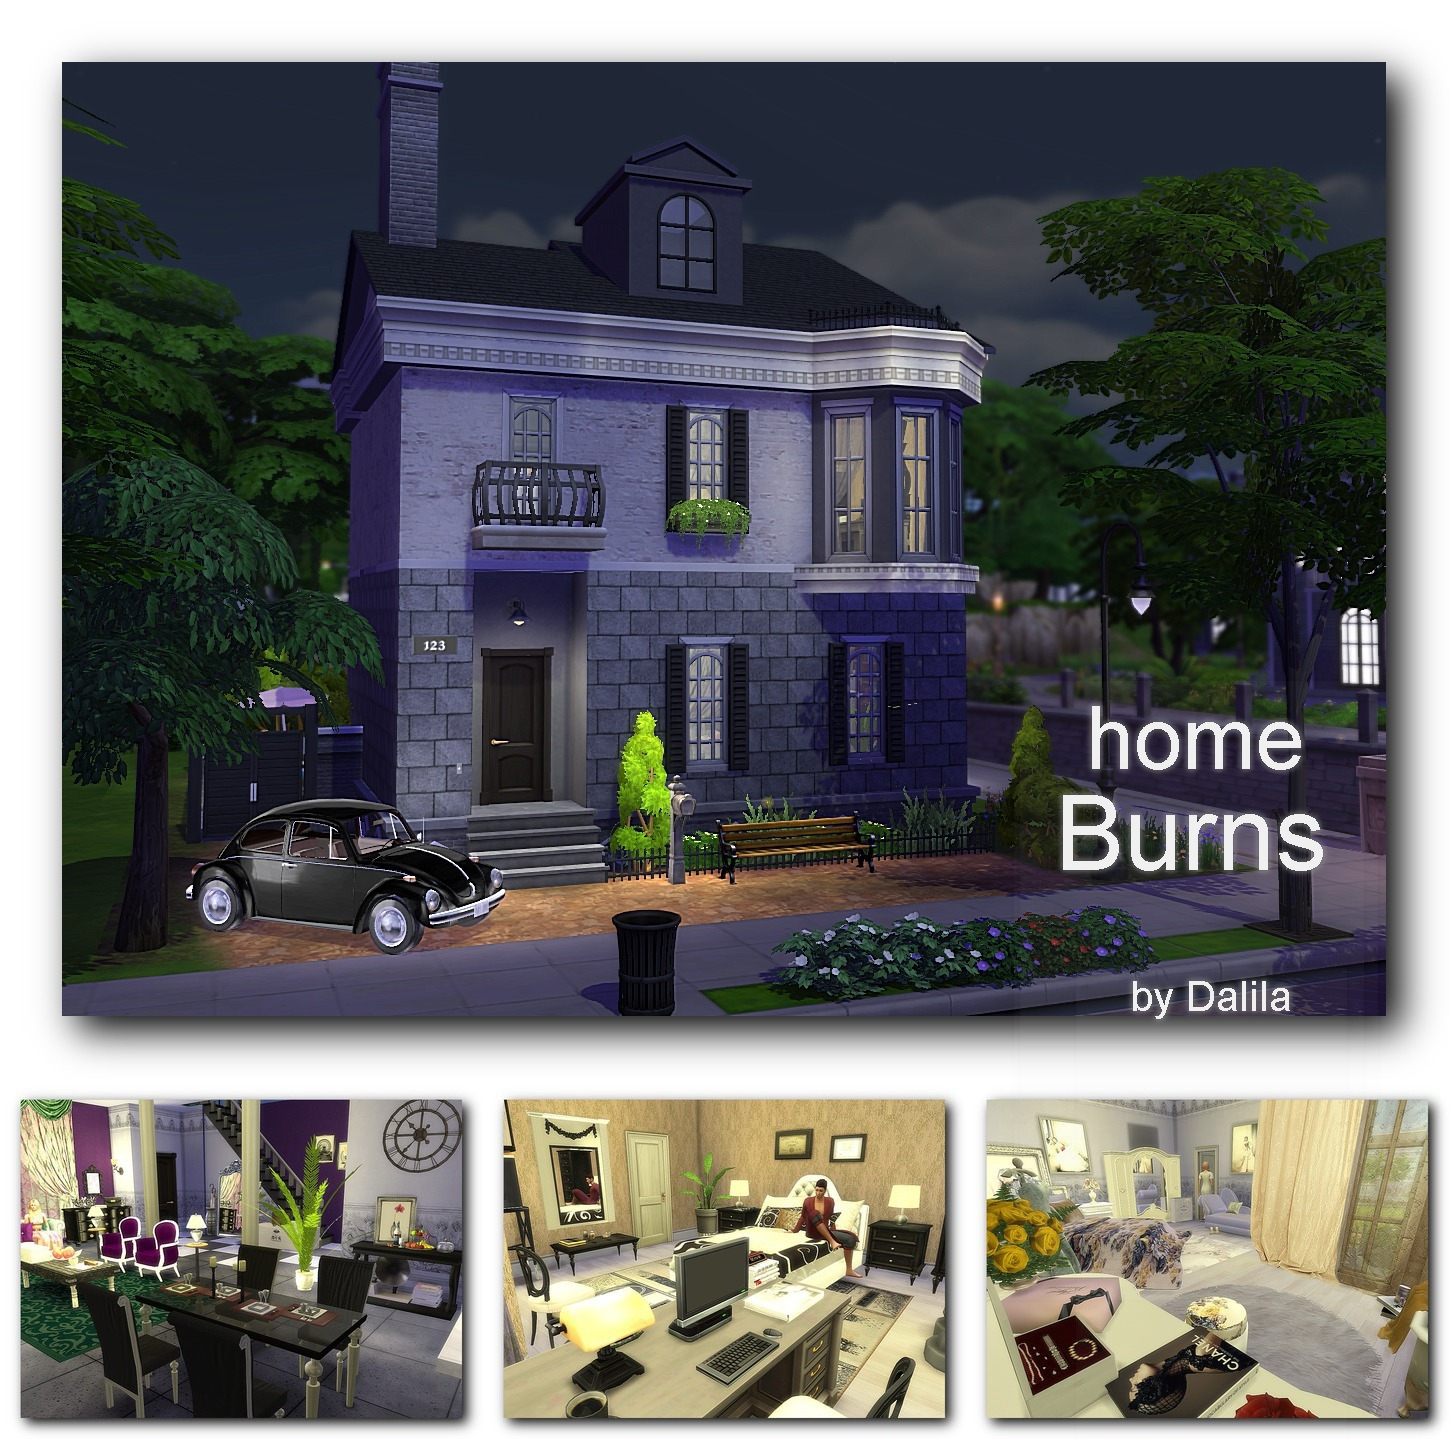 Home Burns by Dalila